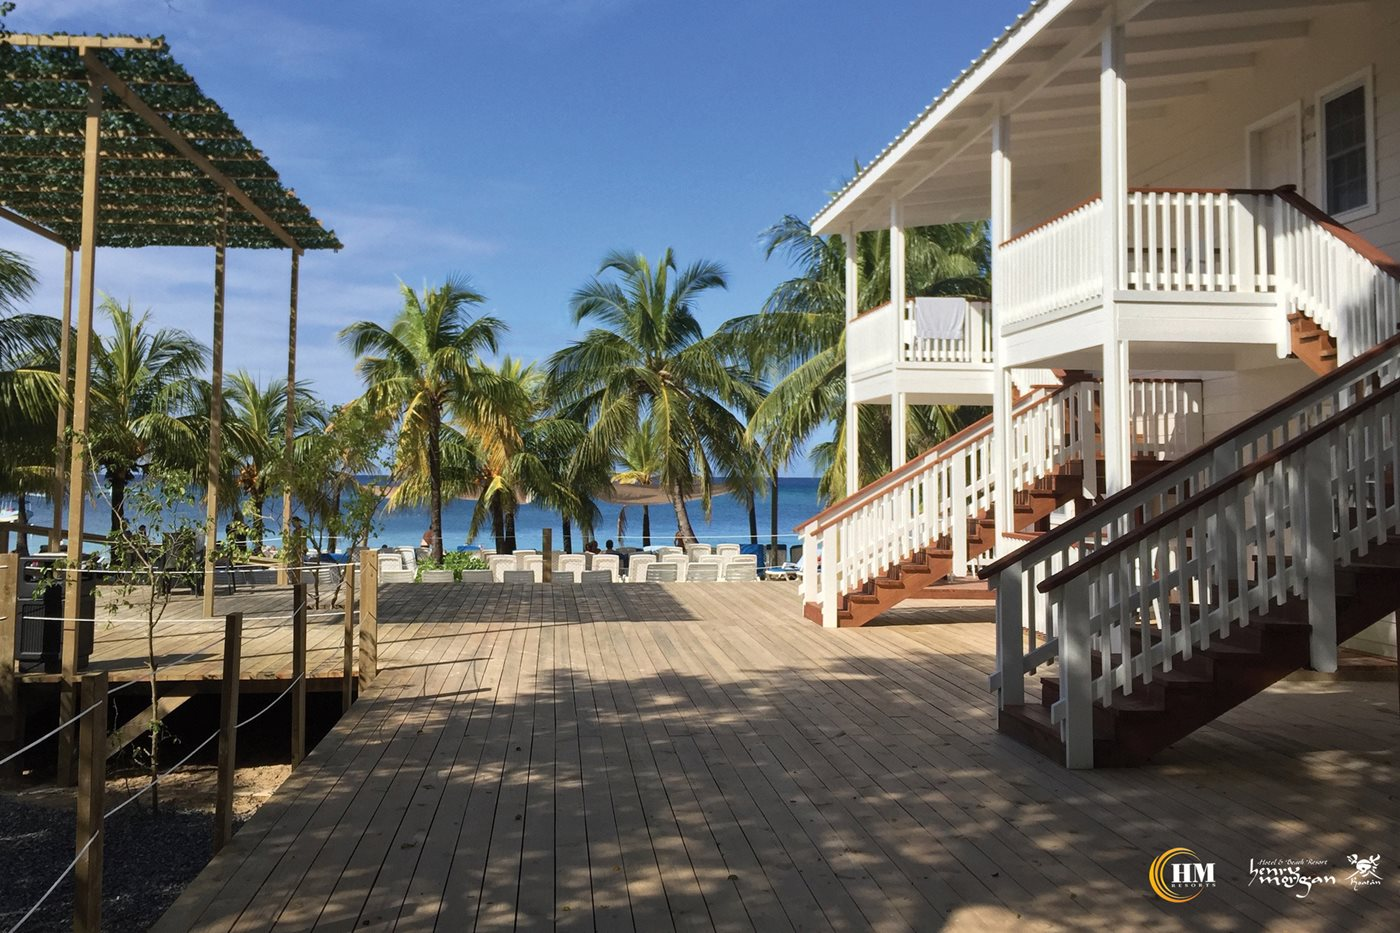 Henry Morgan Hotel & Beach Resort